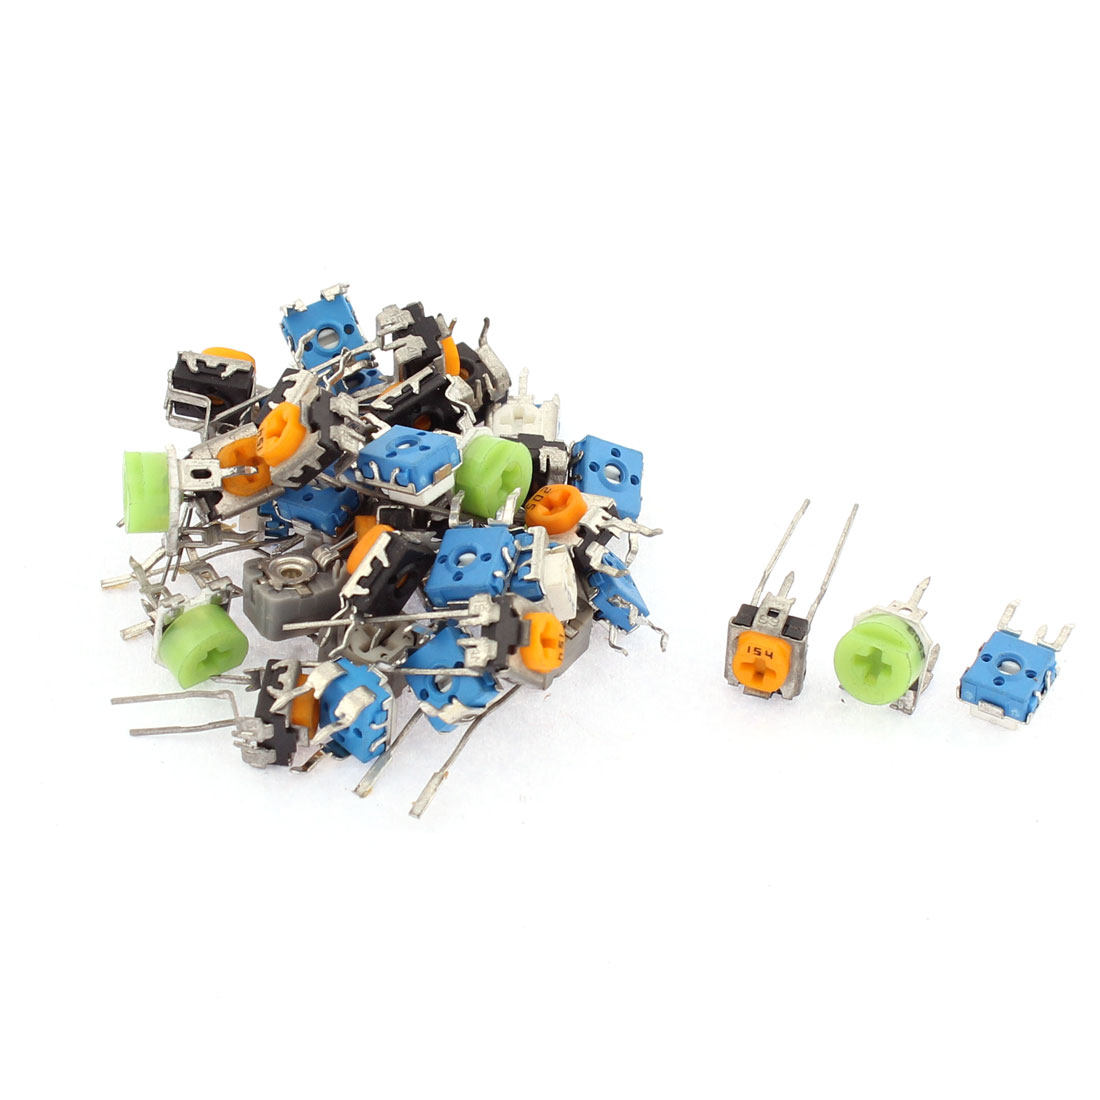 39Pcs 100-2M Ohm Resistance 3 Terminals Trimmer Potentiometer Variable Resistors Set